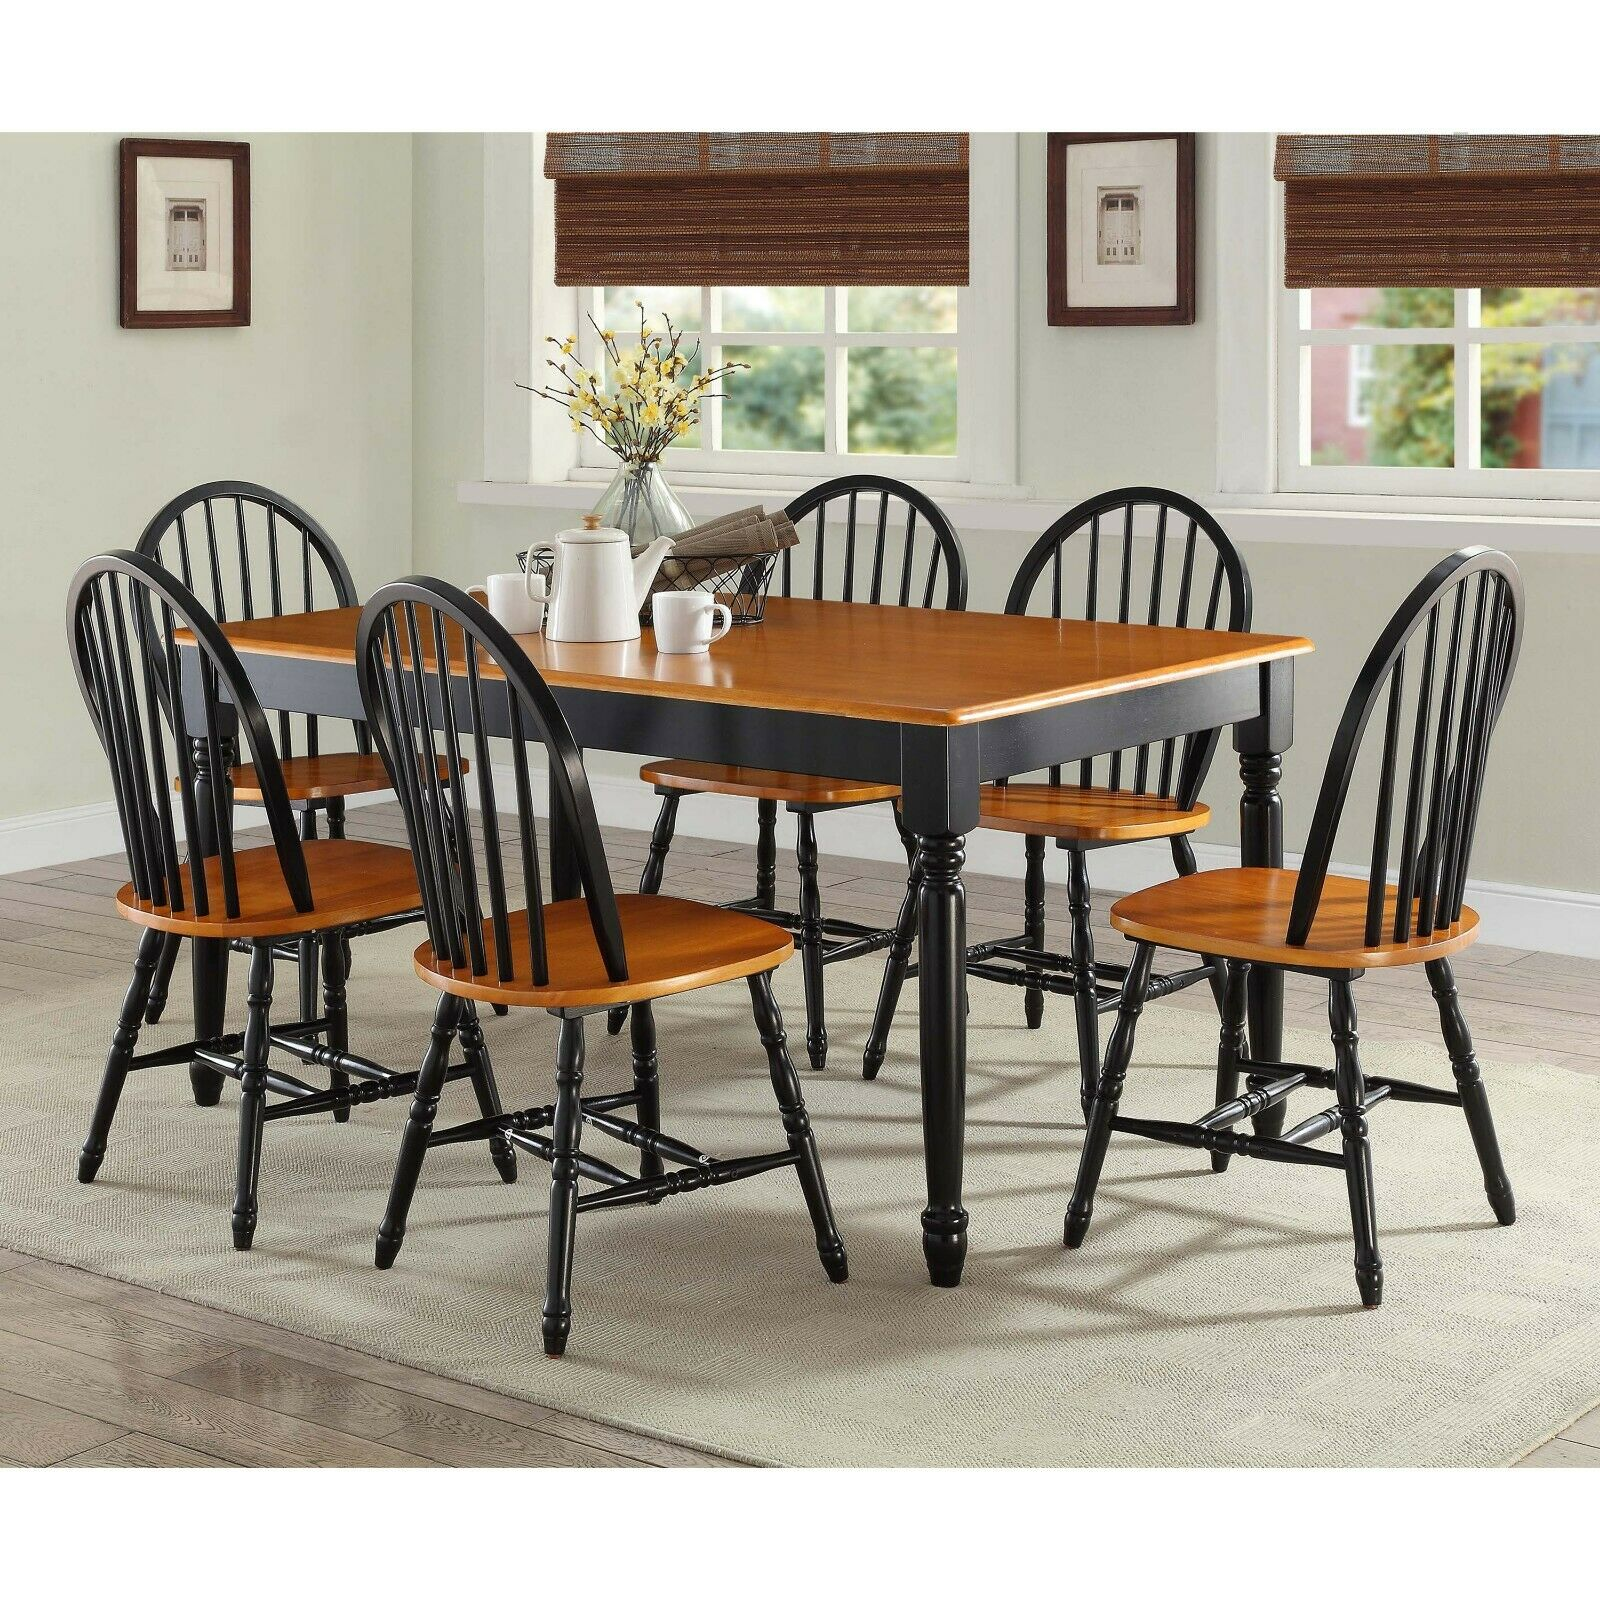 dining room table set farmhouse country wood